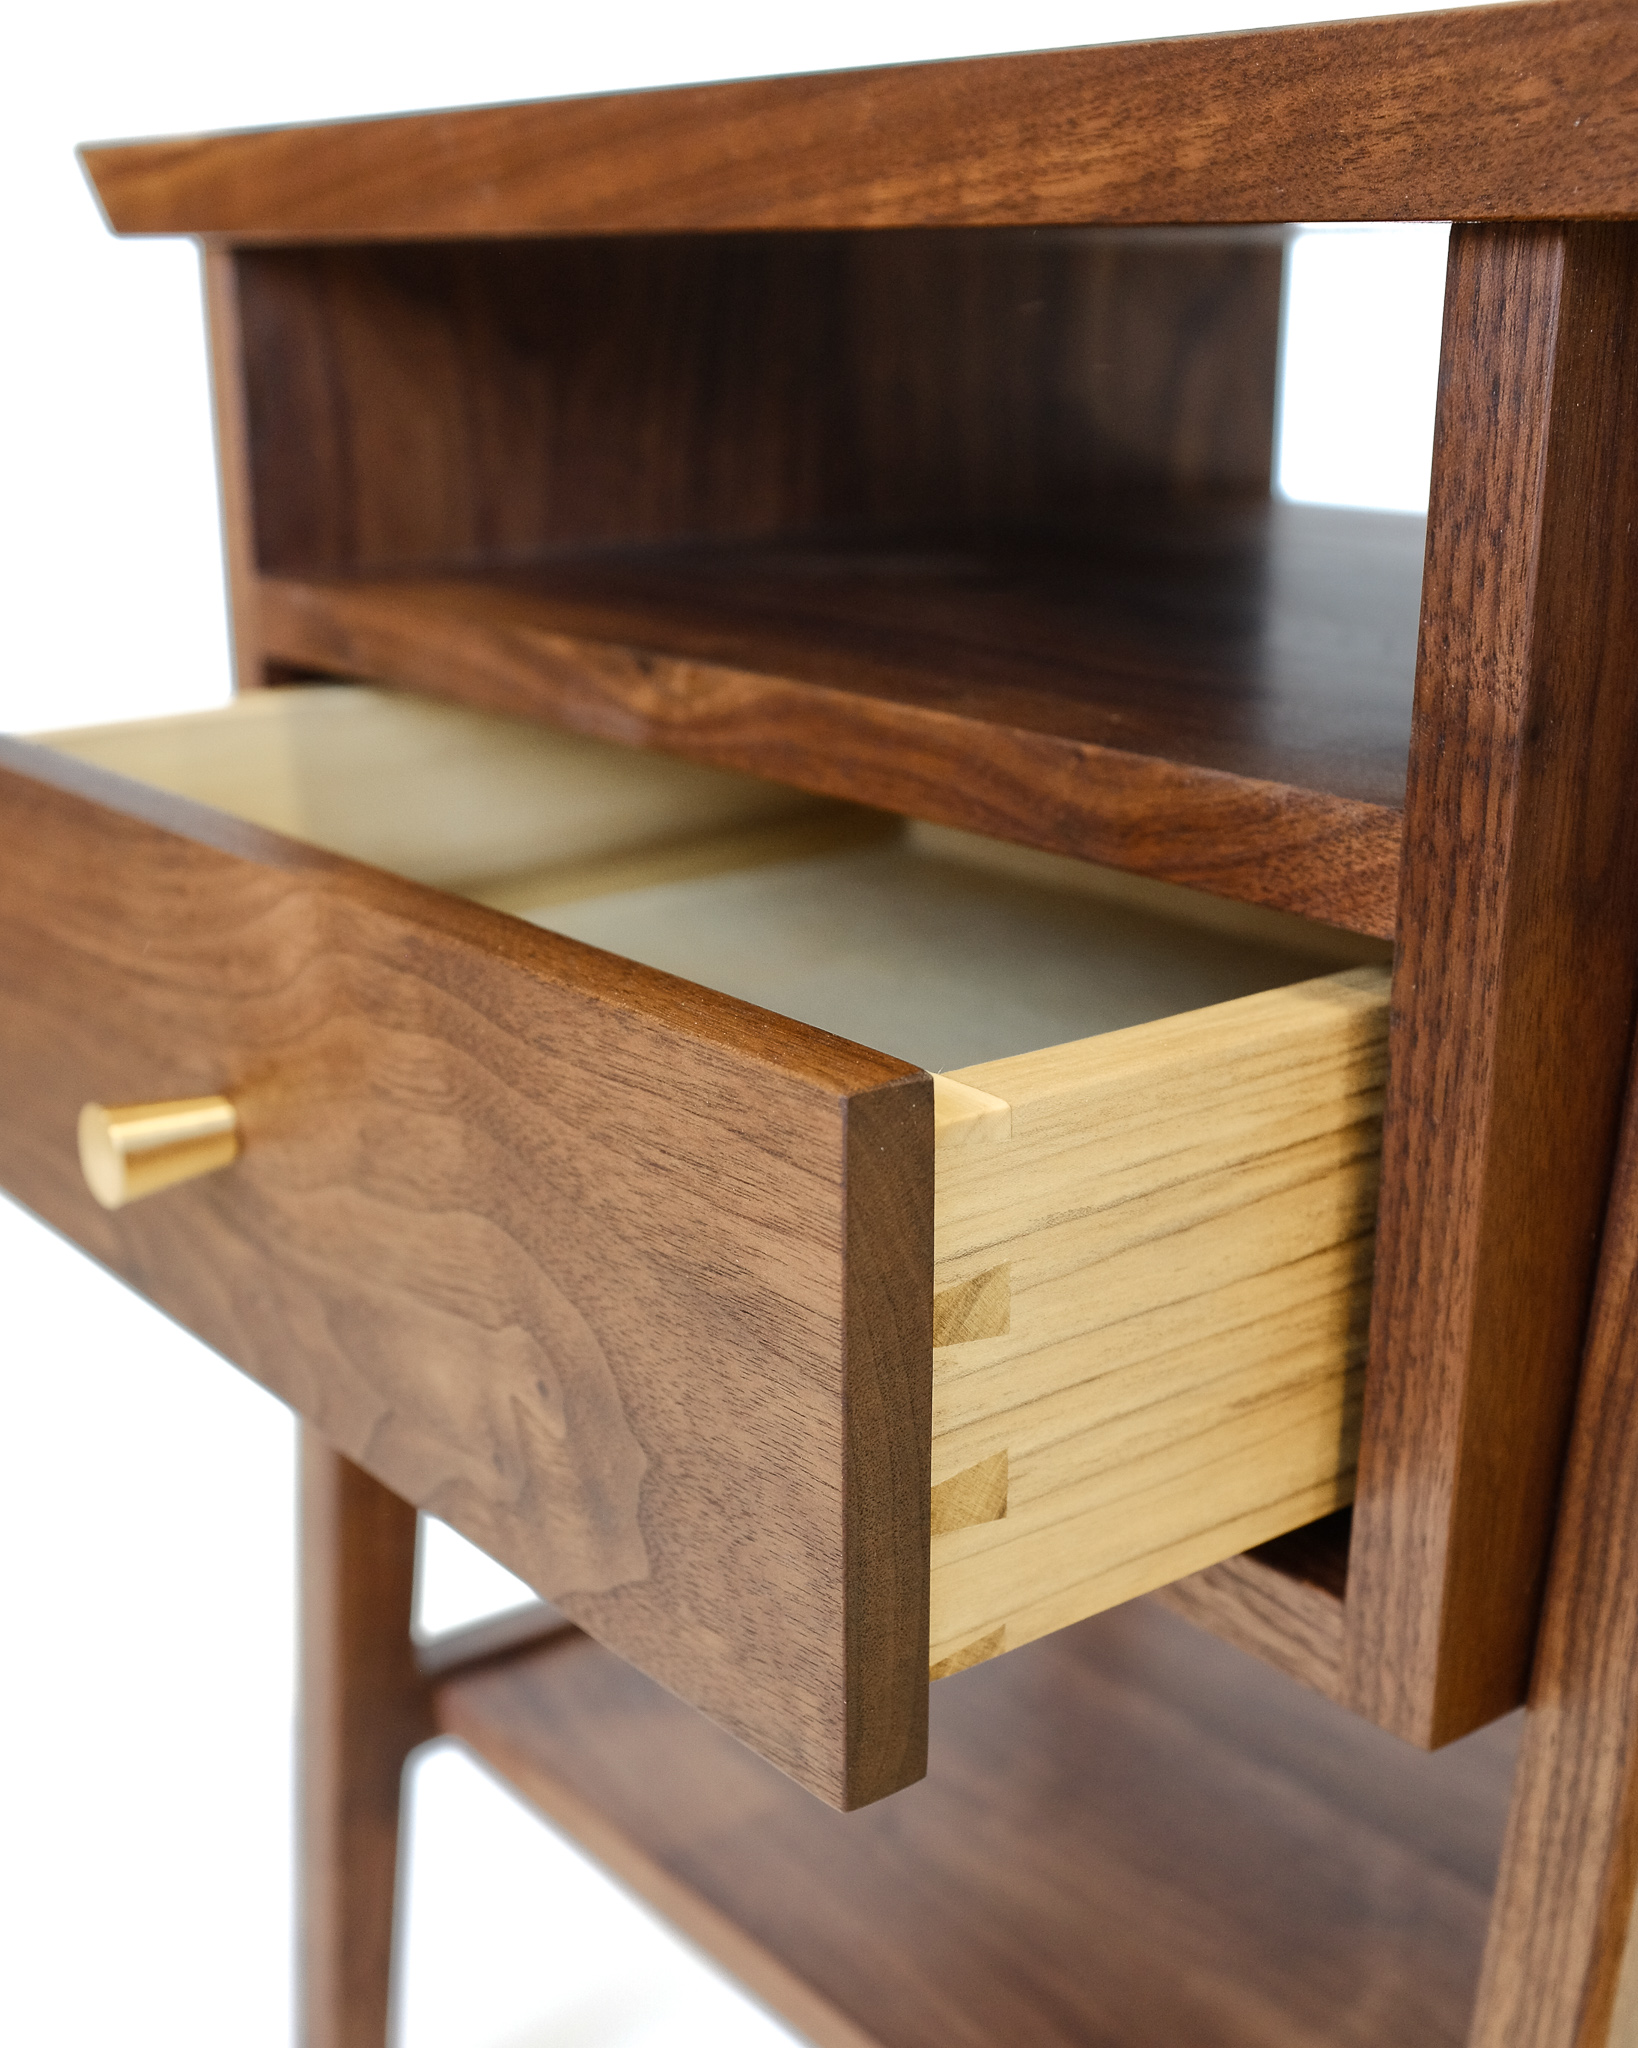 Detail of poplar dovetail drawer in the walnut nightstands. The upper cubby is perfect for book storage while the lower shelf allows additional storage or display.